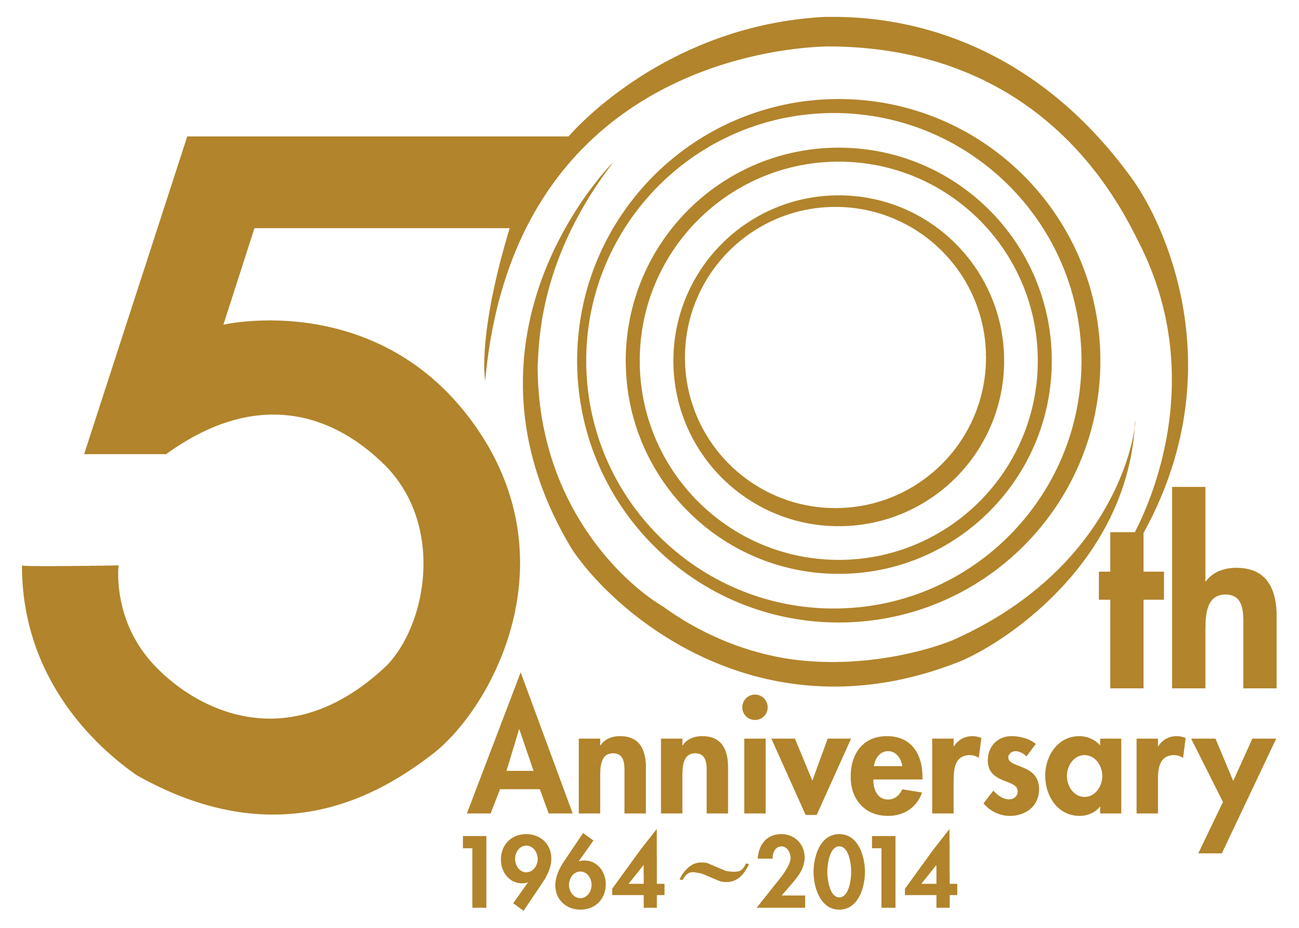 Golden clipart 50th #9 - PNG HD 50Th Wedding Anniversary